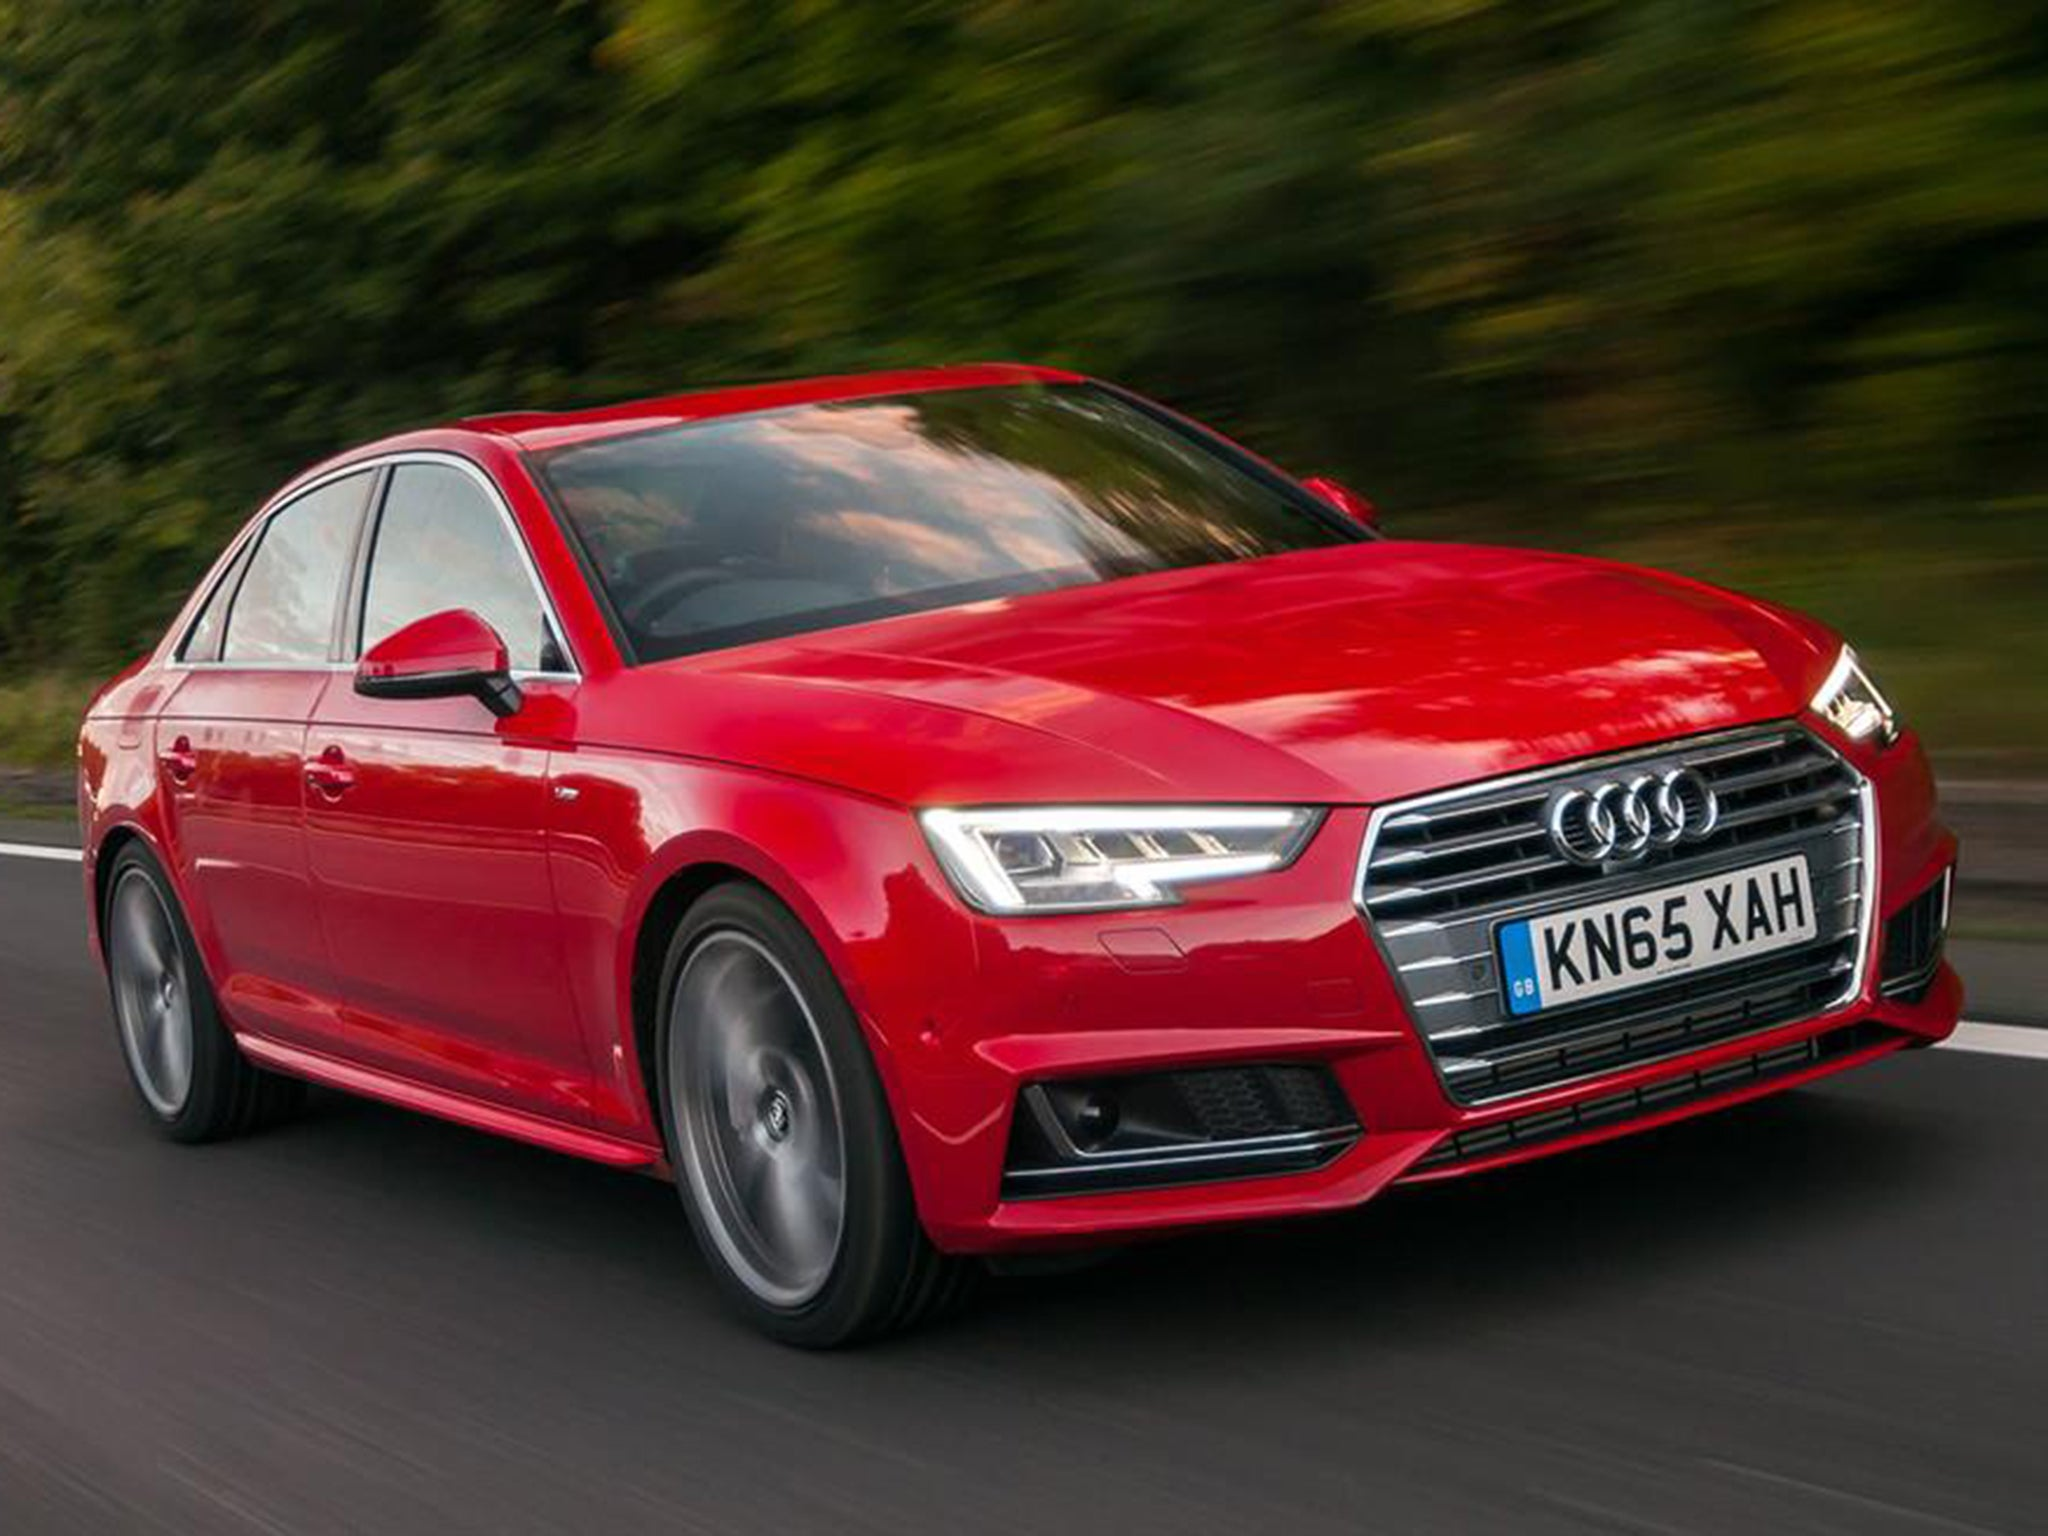 Annual what car ceremony crowns new audi a4 car of the year